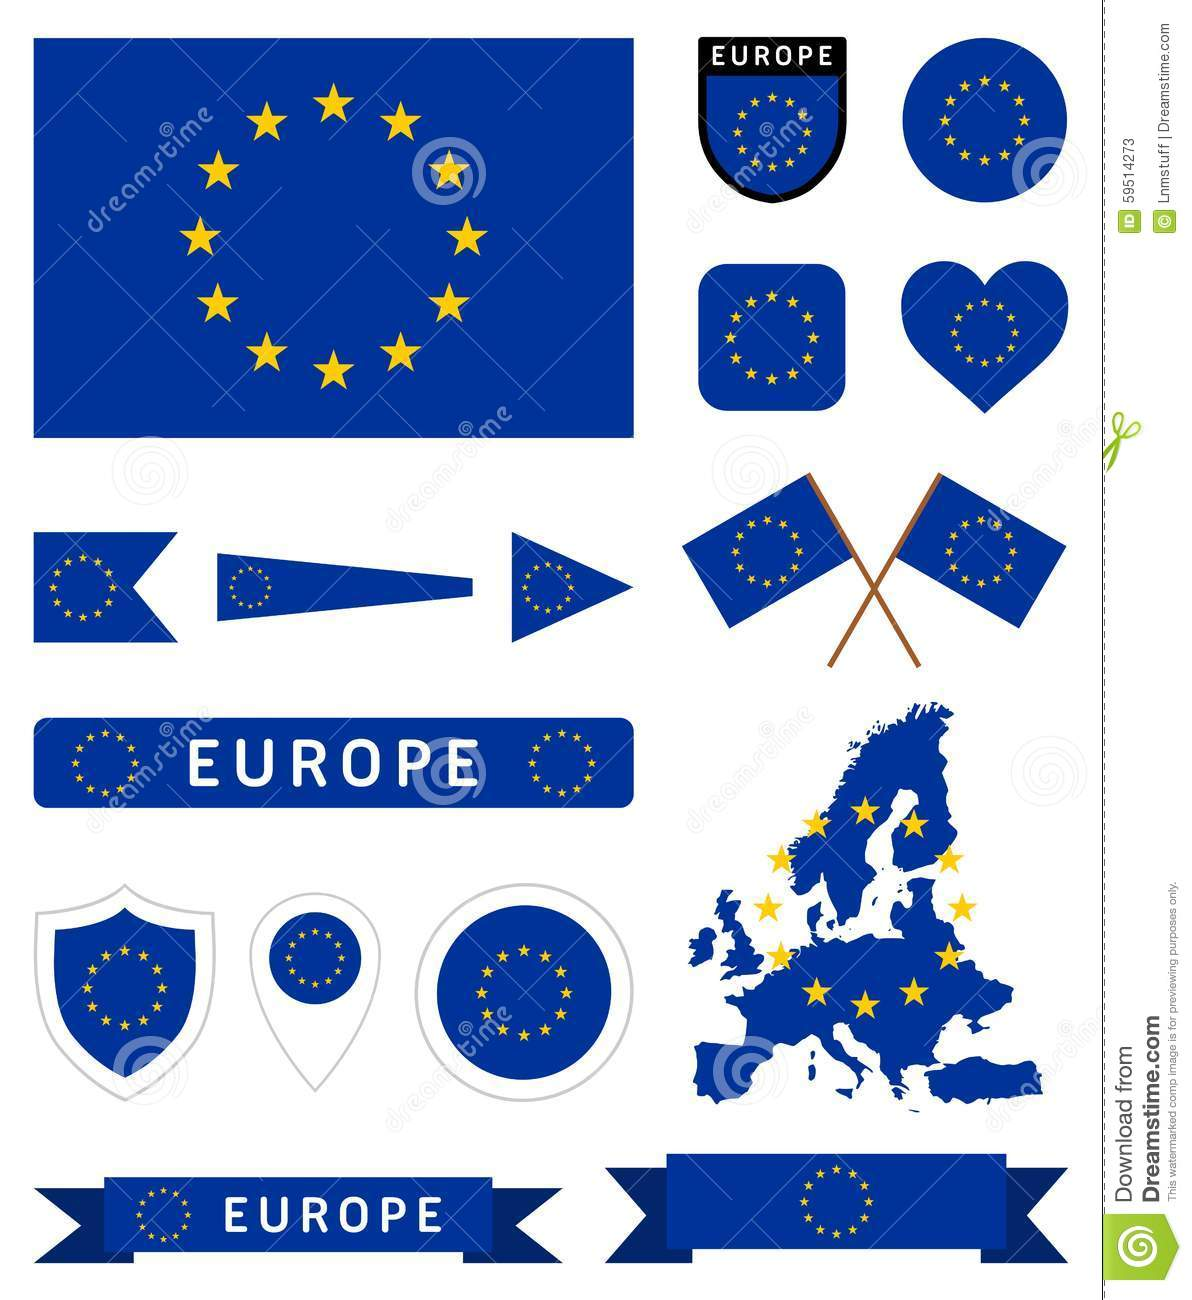 https://thumbs.dreamstime.com/z/european-union-flag-set-vector-collection-many-related-illustrations-different-shapes-many-uses-editable-eps-file-59514273.jpg